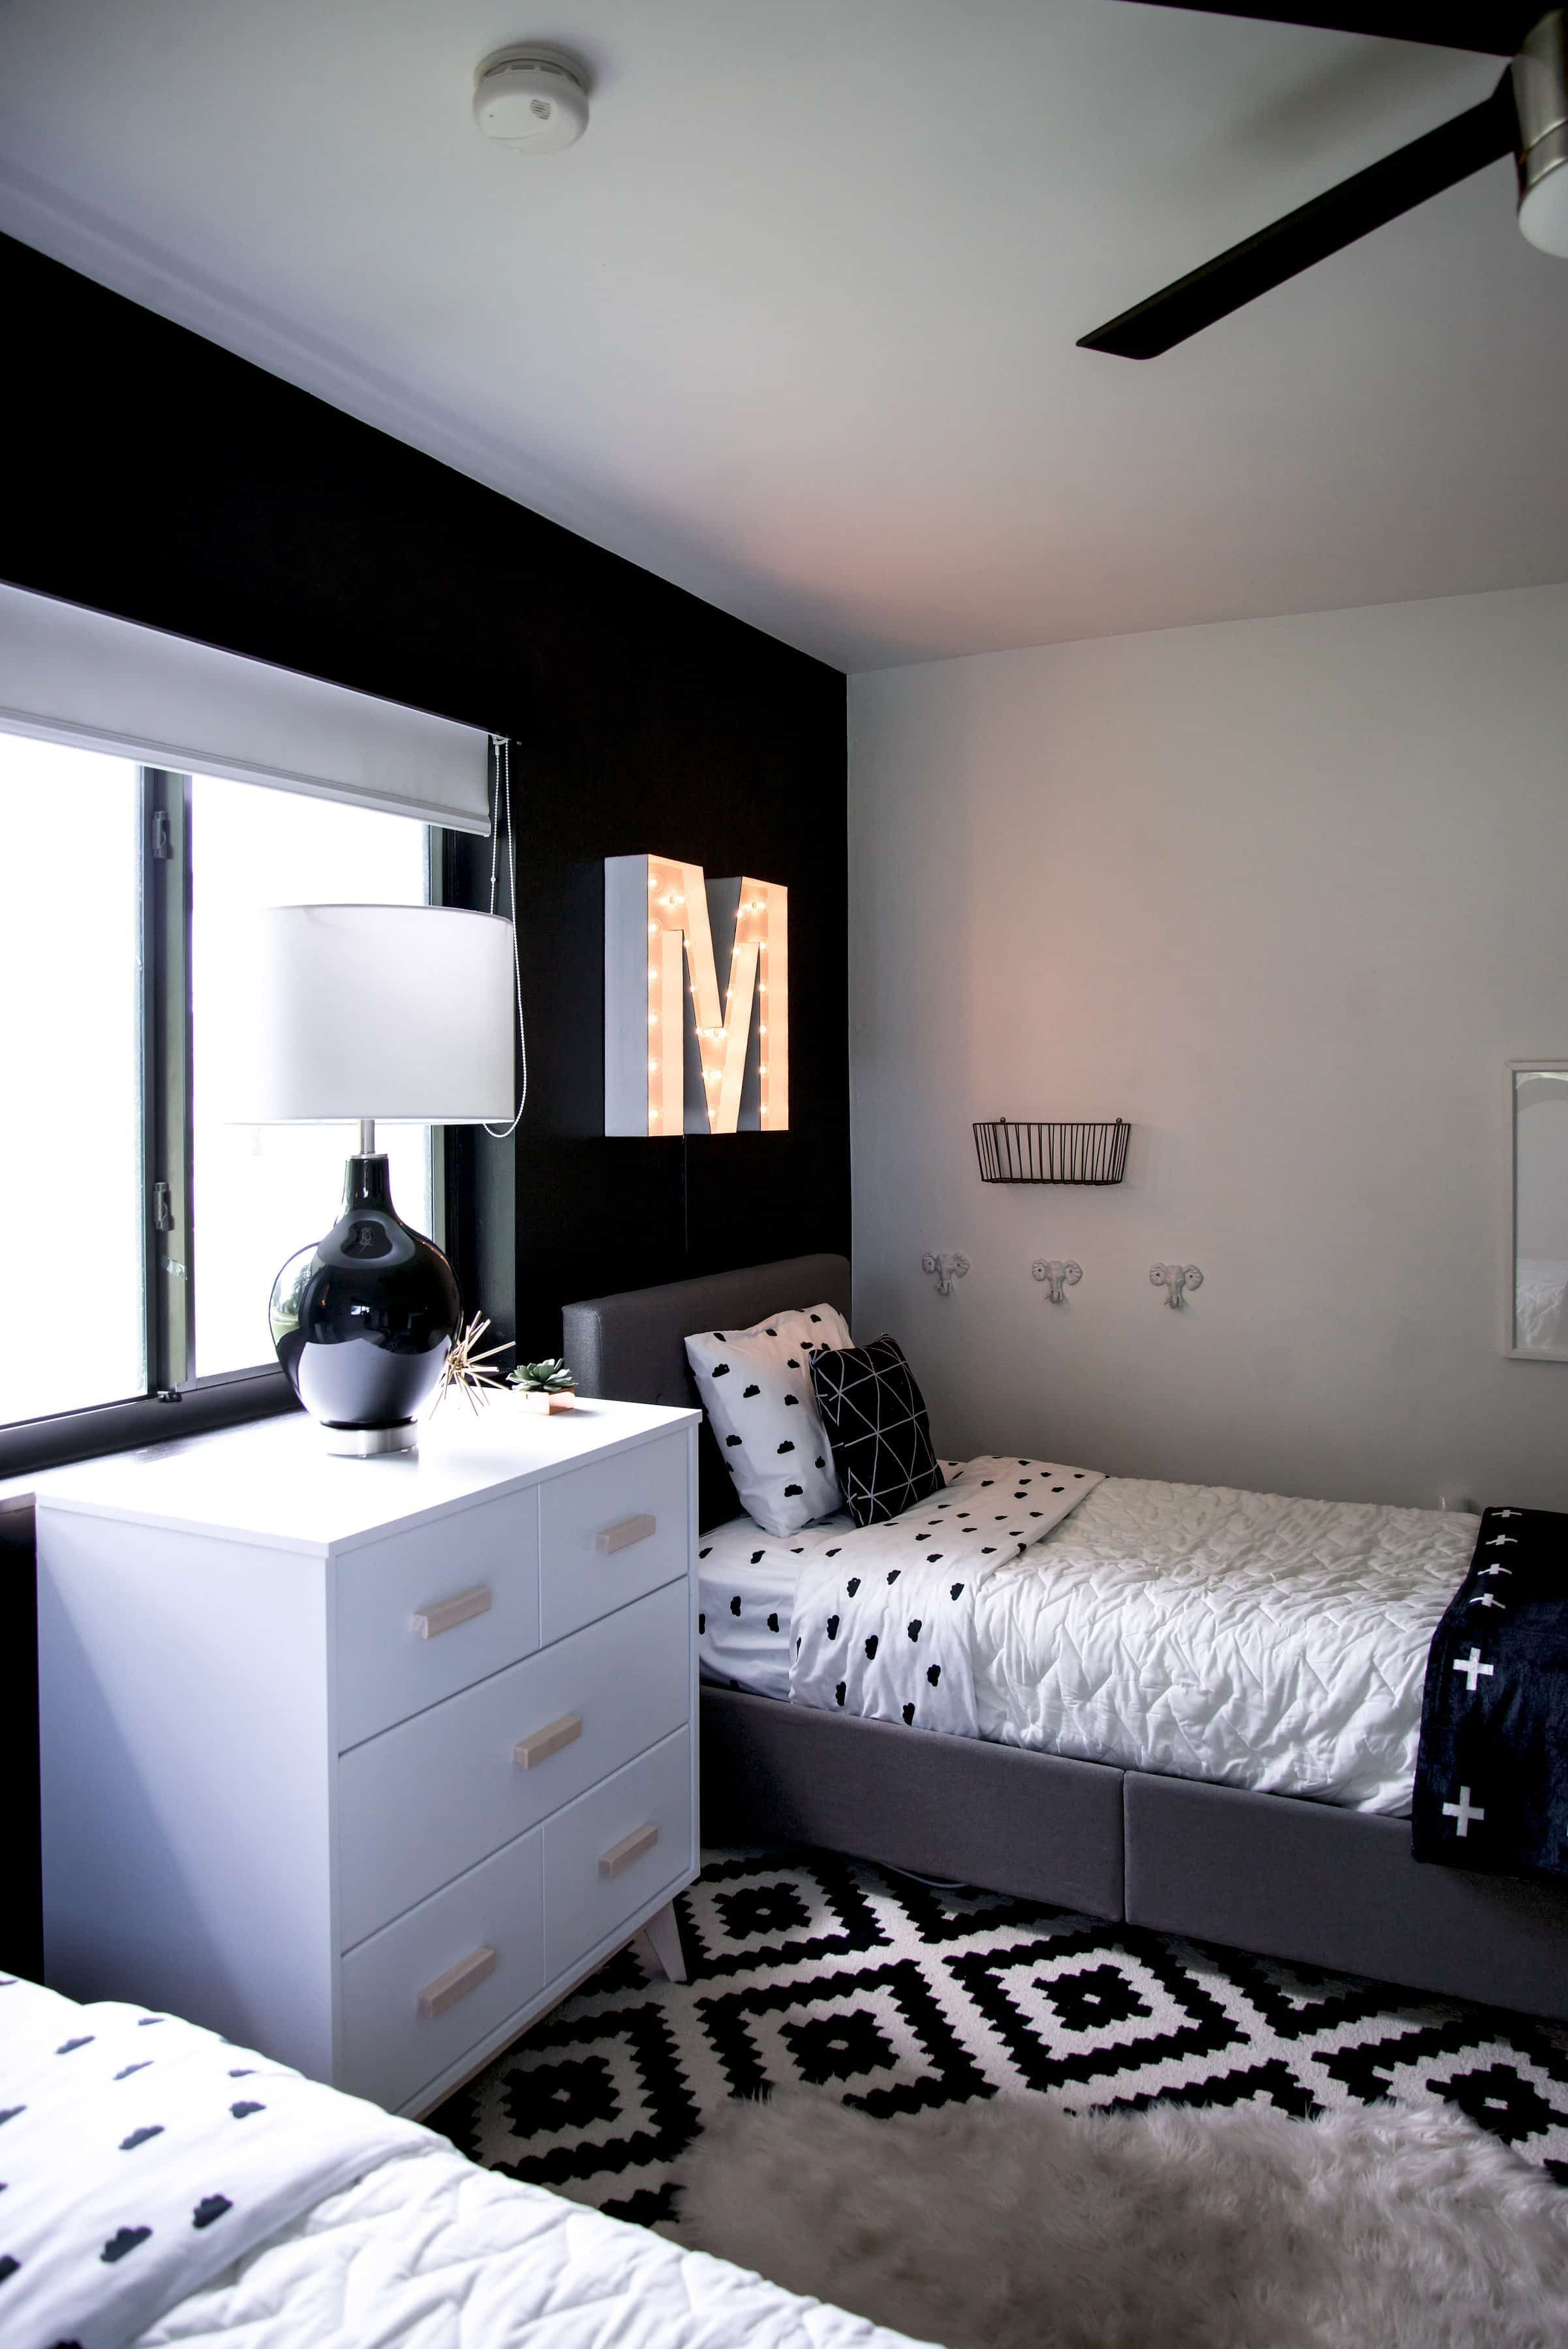 Black And White Modern Kids Room In 2020 Small Room Bedroom